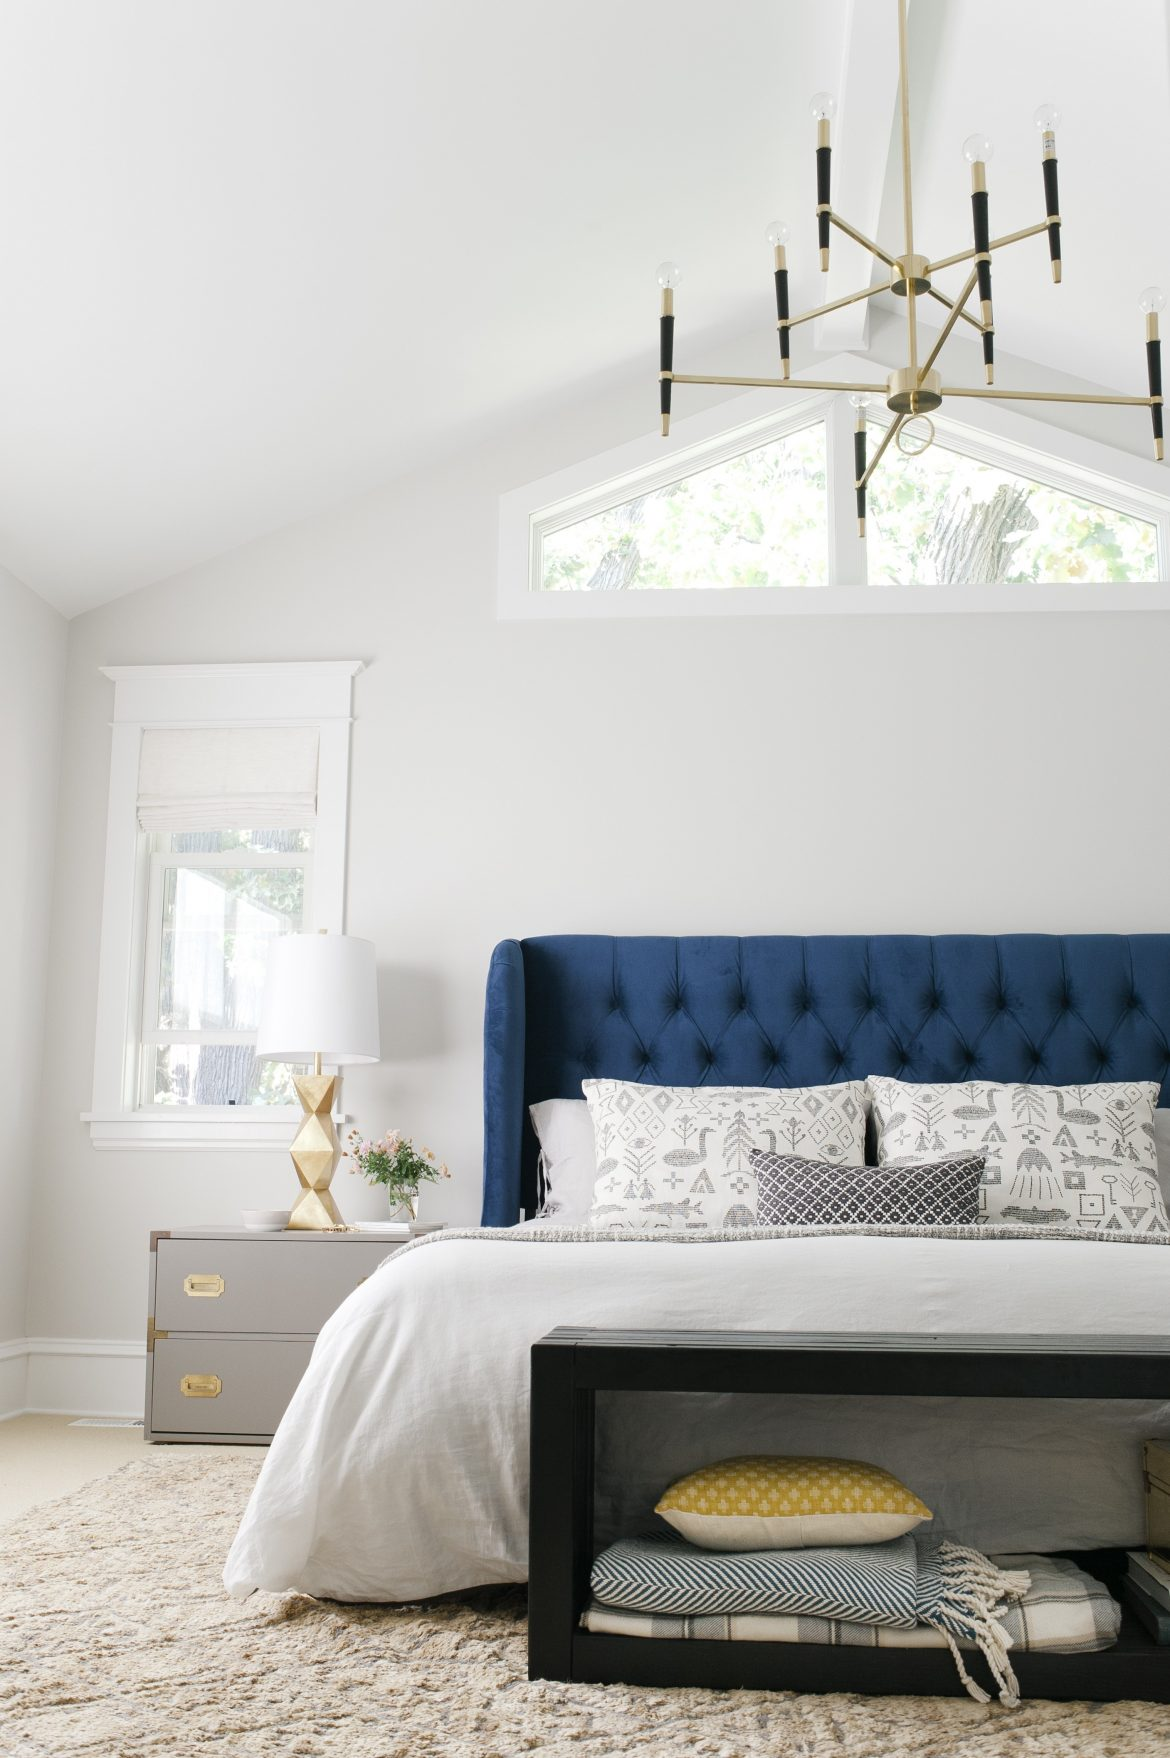 Bedroom Ceiling Ideas That You Need To Consider Now 2 bedroom ceiling ideas Bedroom Ceiling Ideas That You Need To Consider Now Bedroom Ceiling Ideas That You Need To Consider Now 2